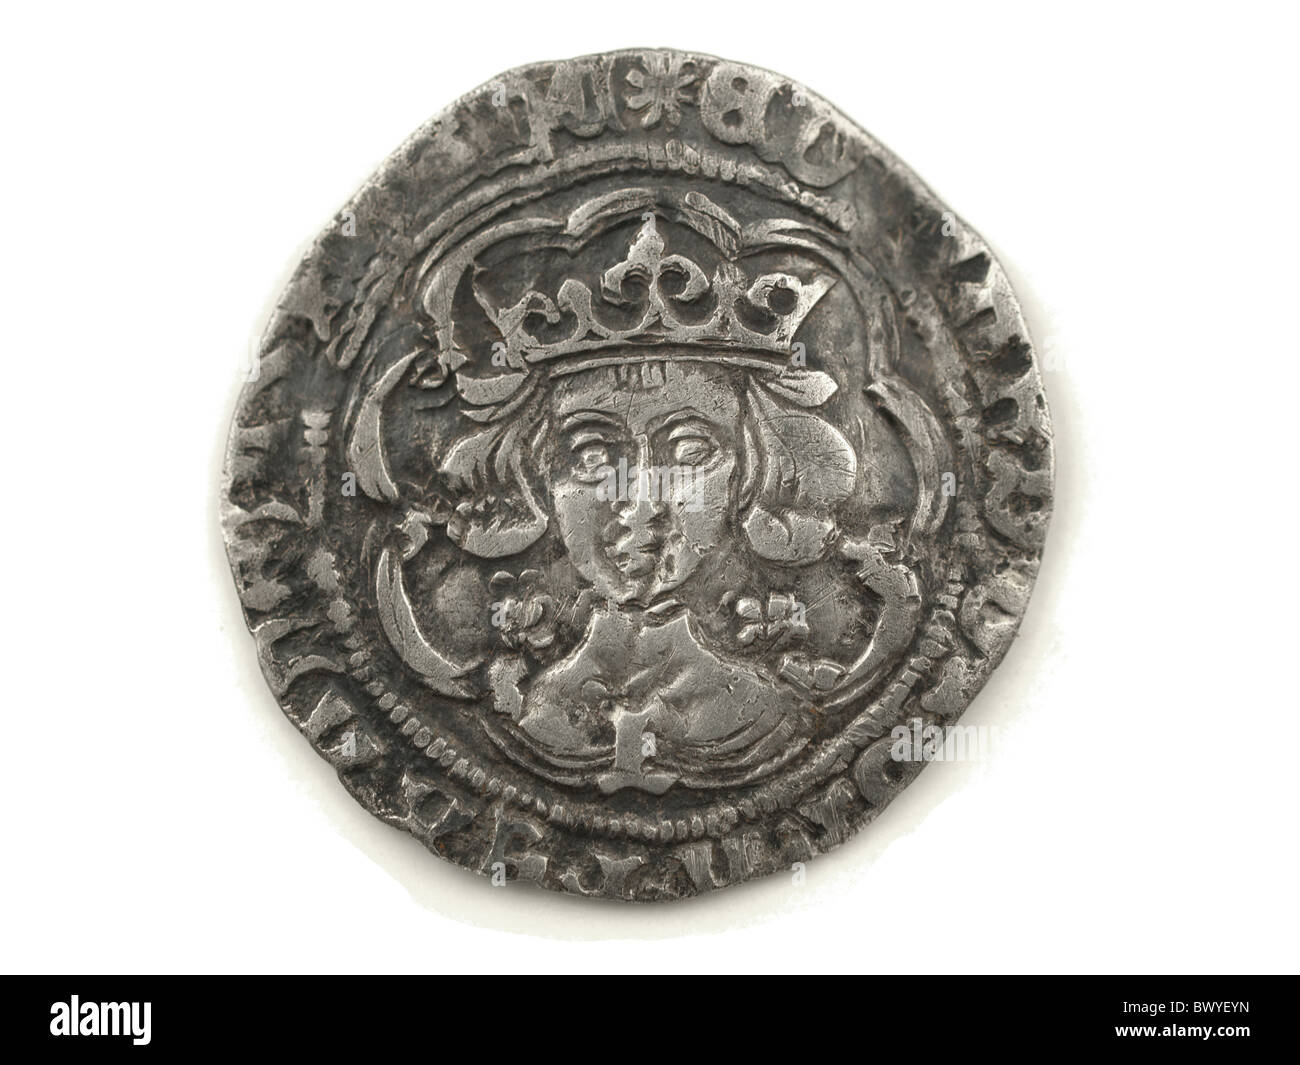 A hammered silver groat of Edward IV - metal detecting find - Stock Image